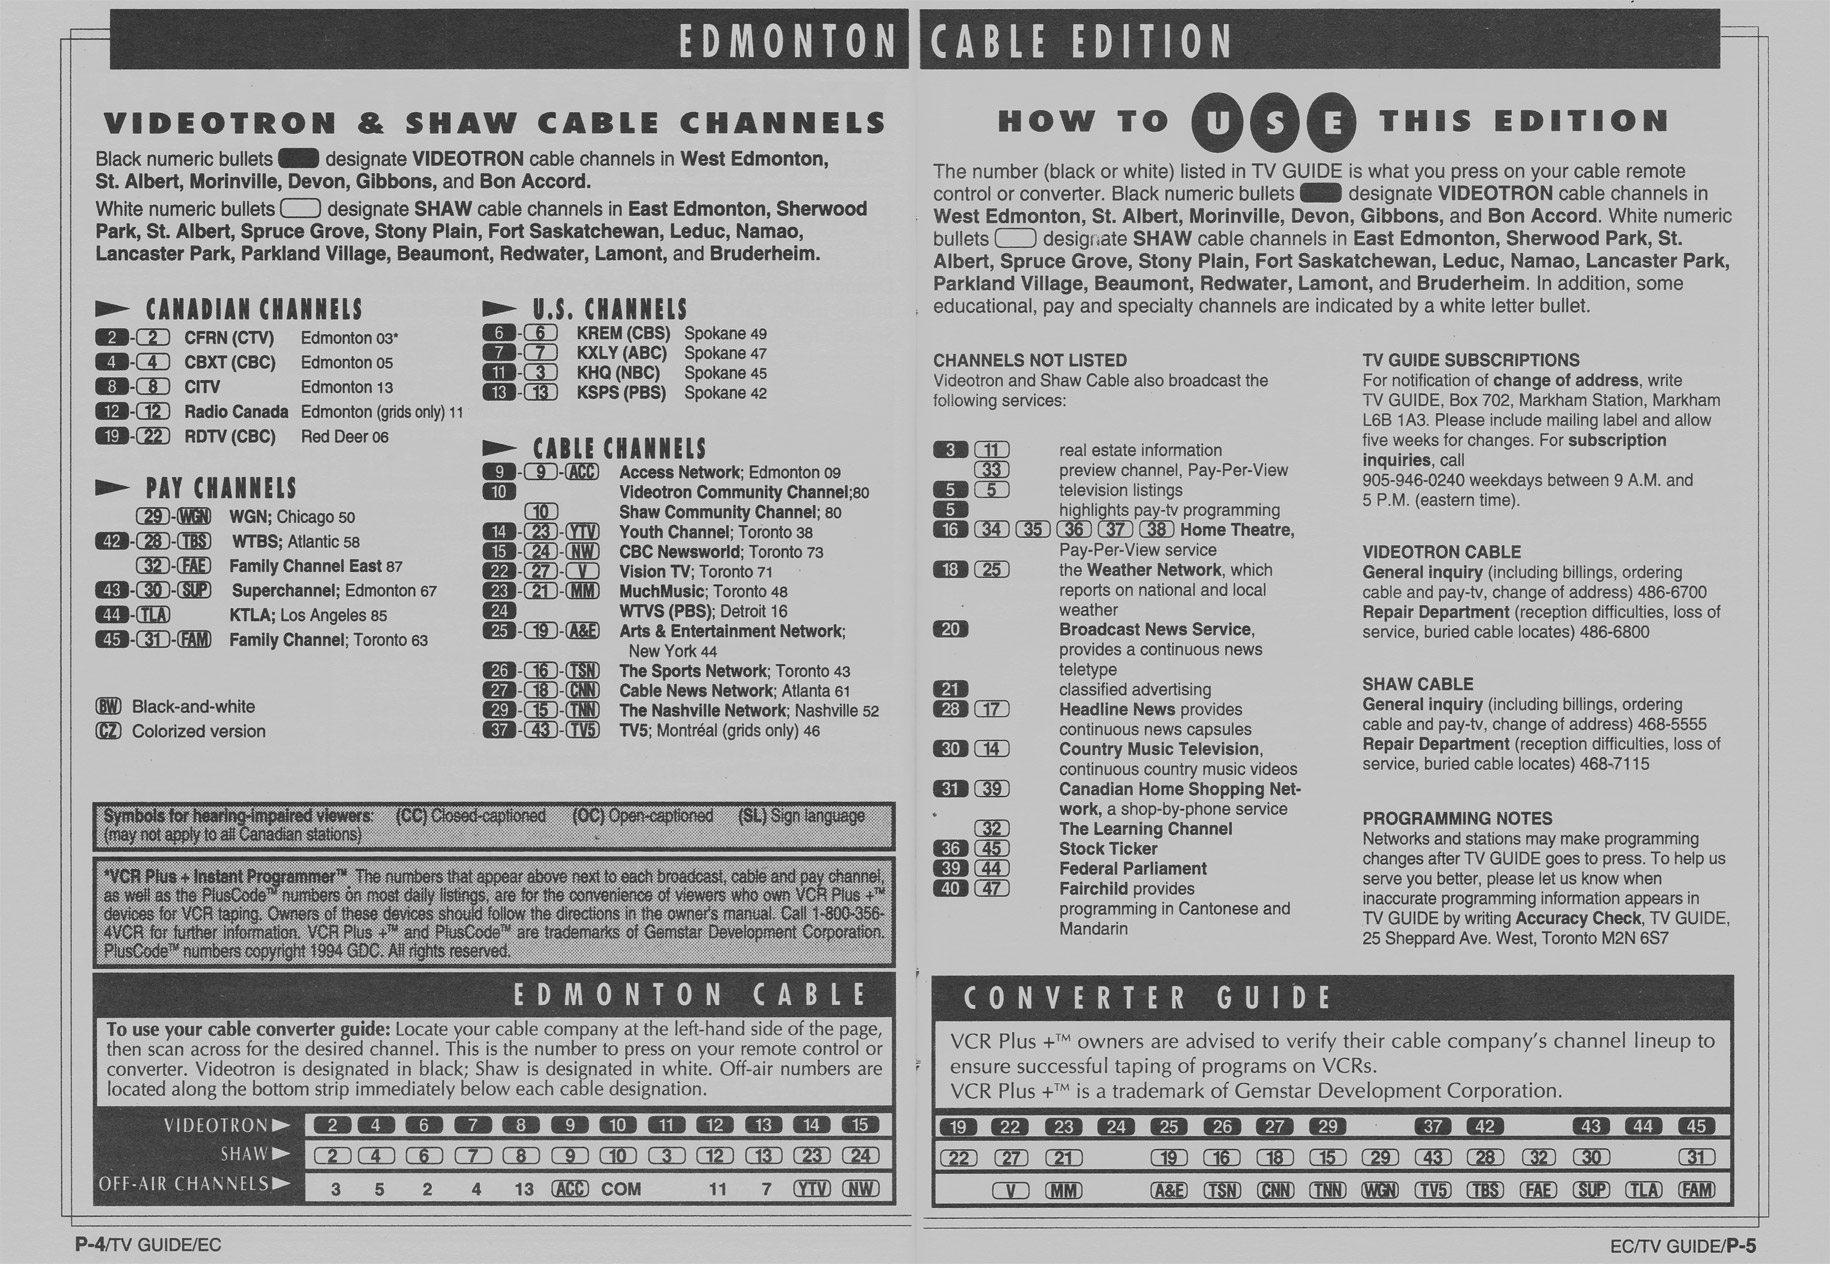 TV Guide October 1 1994 Edmonton Cable Edition Cable Converter Guide